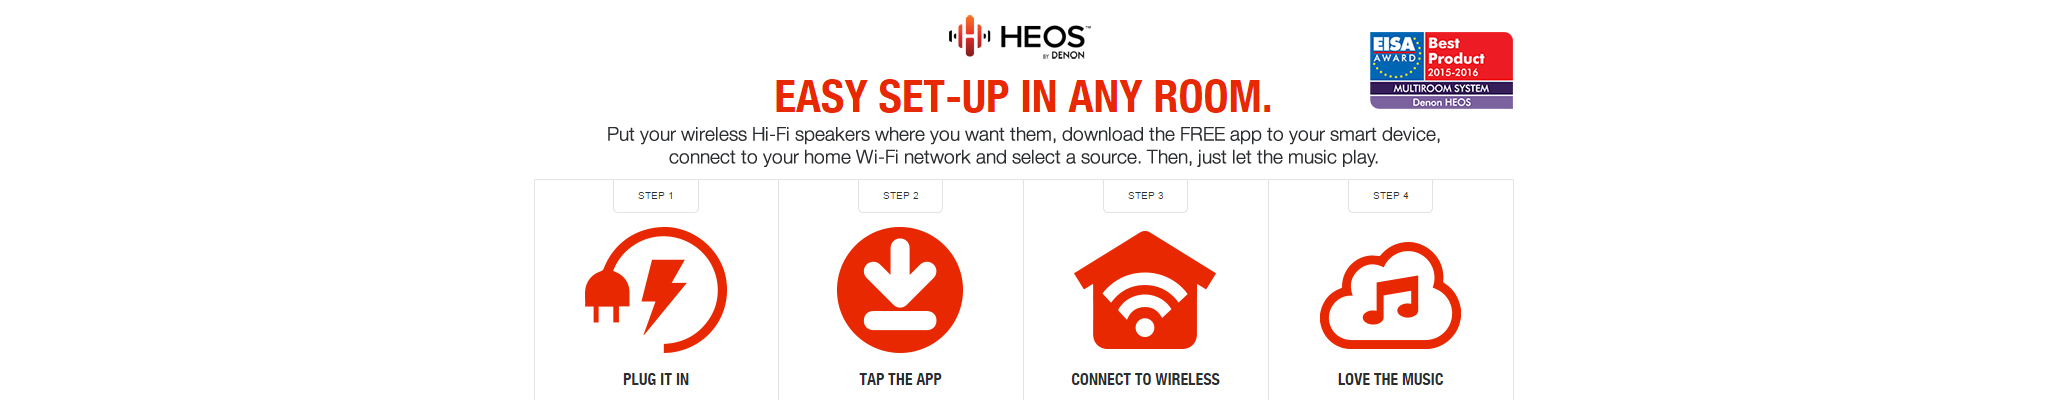 Easy Set Up | HEOS by Denon | Wireless Multi-Room Speaker System - Category